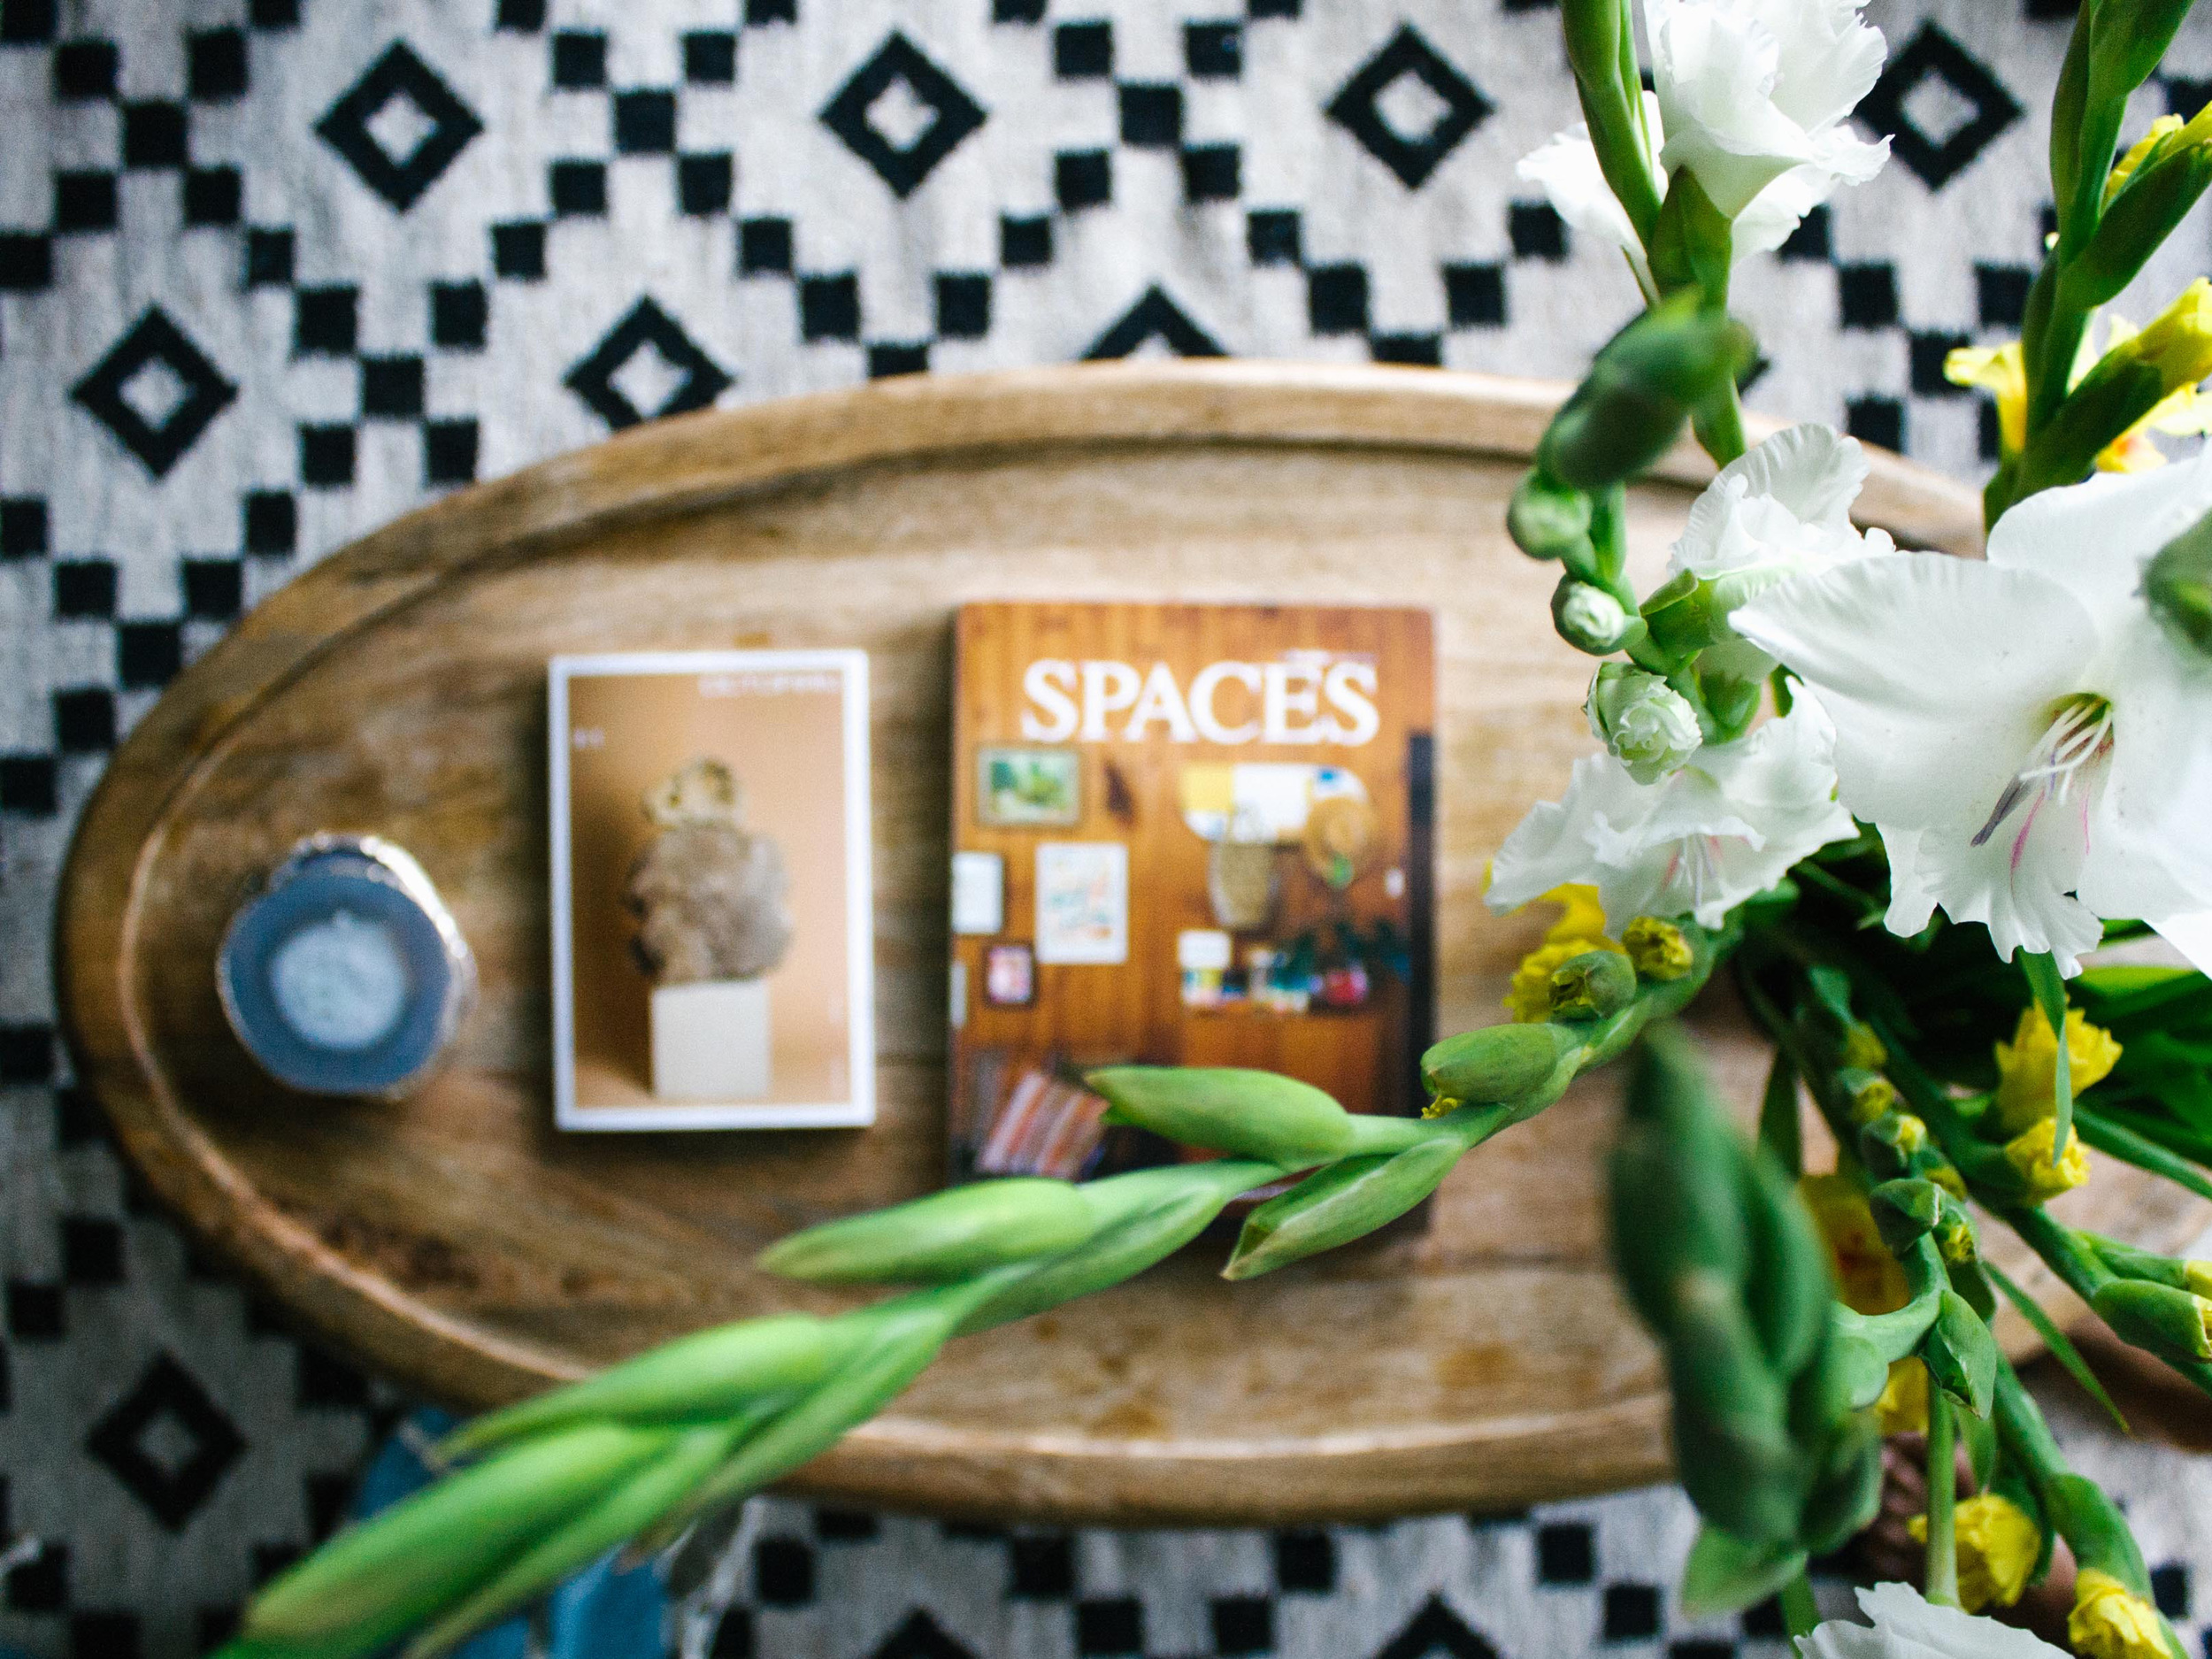 Coffee Table Magazines •   Octopian   and   Spaces